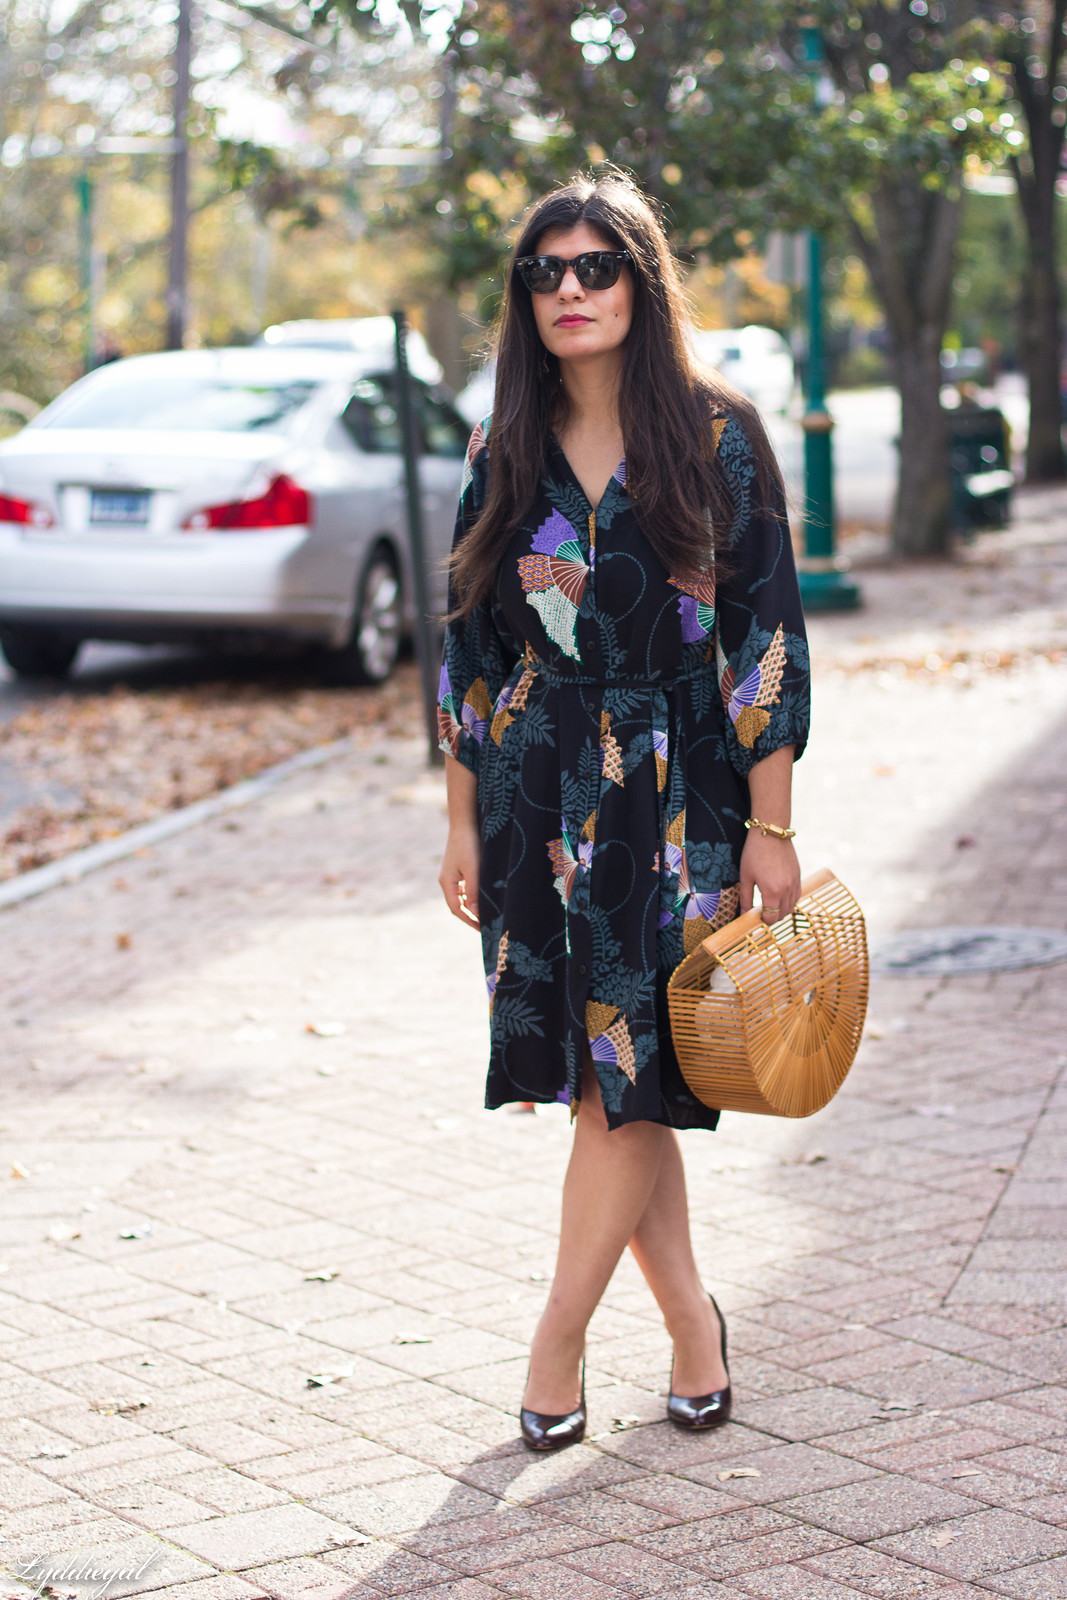 Tucker Japanese Floral Dress, Bamboo Bag, Fall Outfit